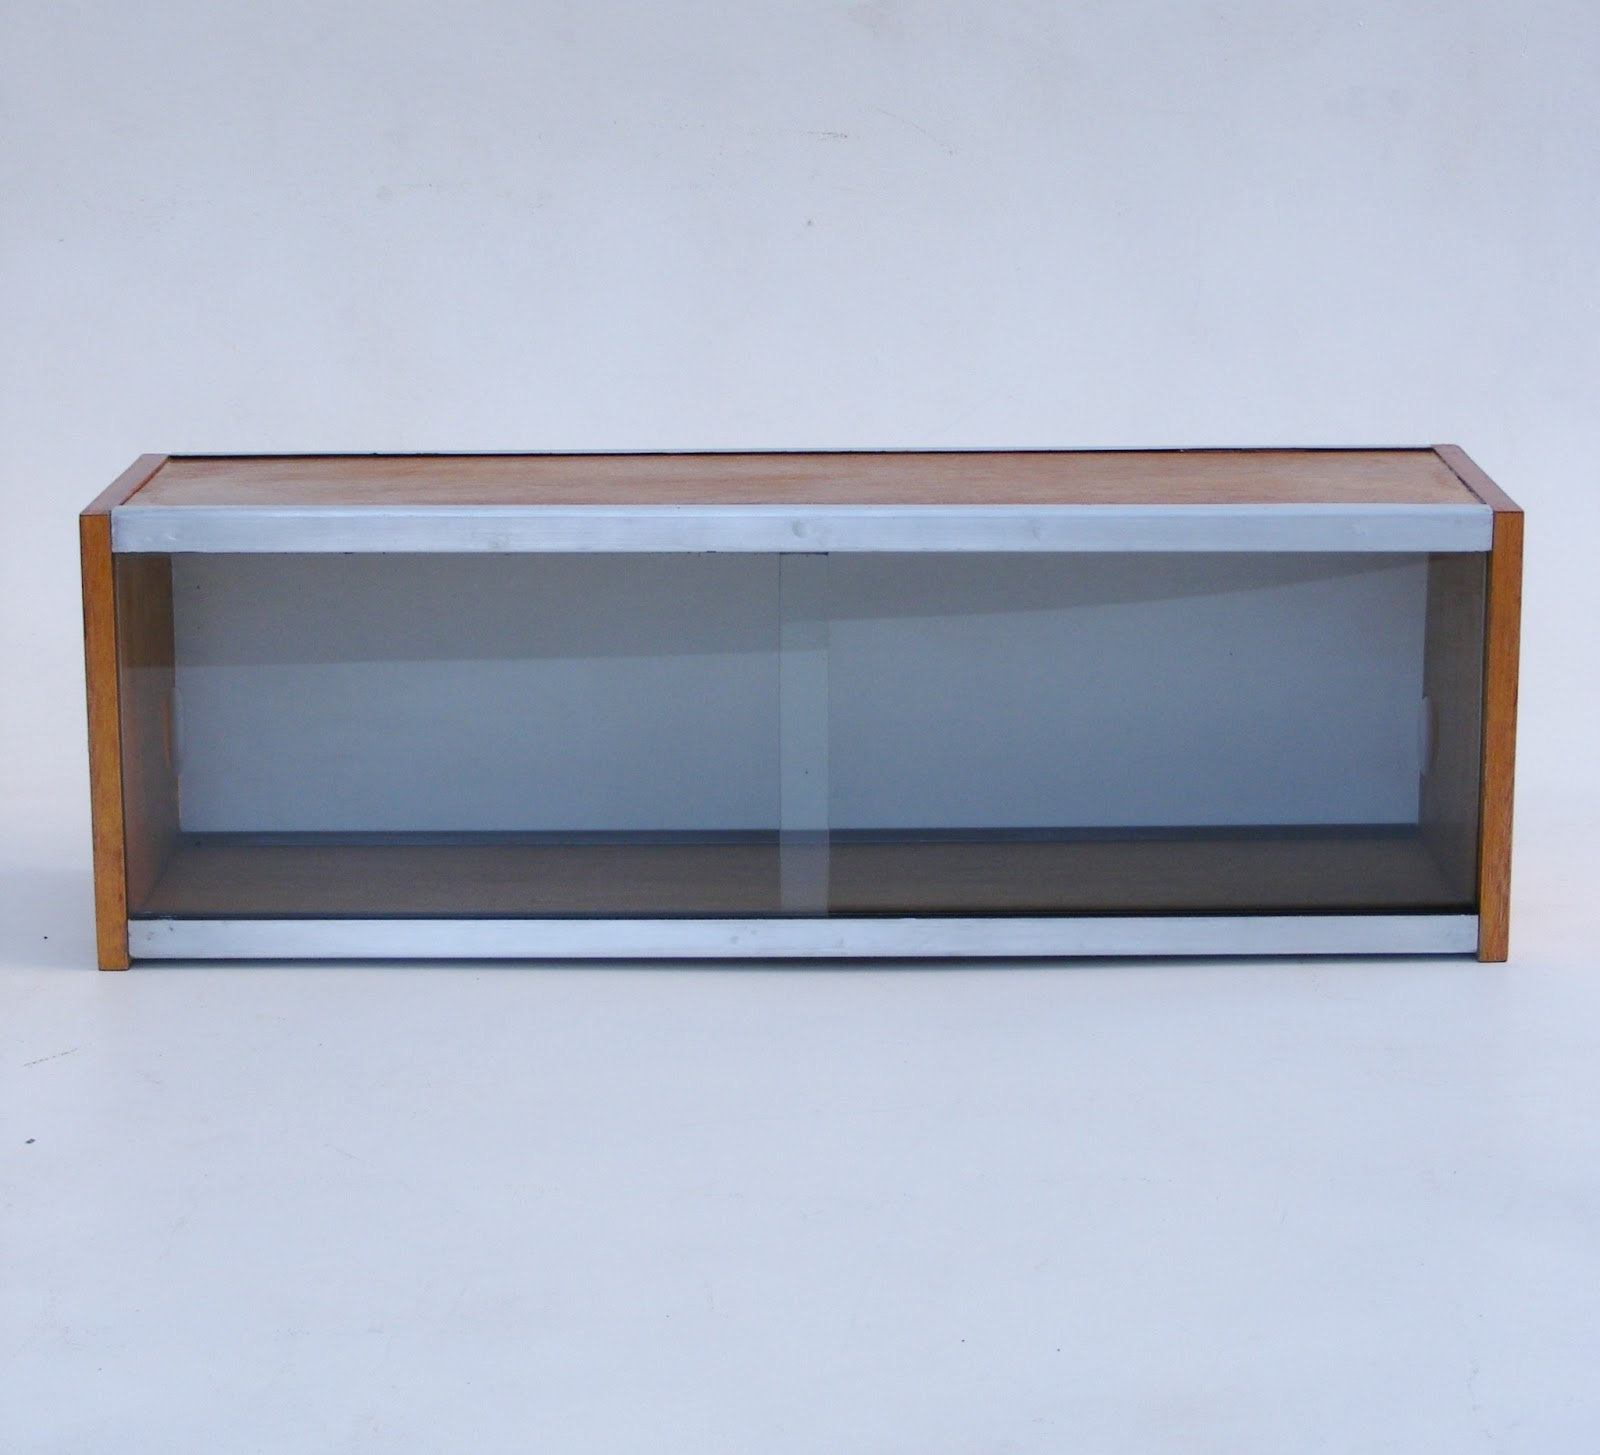 Stainless Steel And Glass Kitchen Cabinet Doors: VAMP FURNITURE: New Vintage Furniture Stock At Vamp